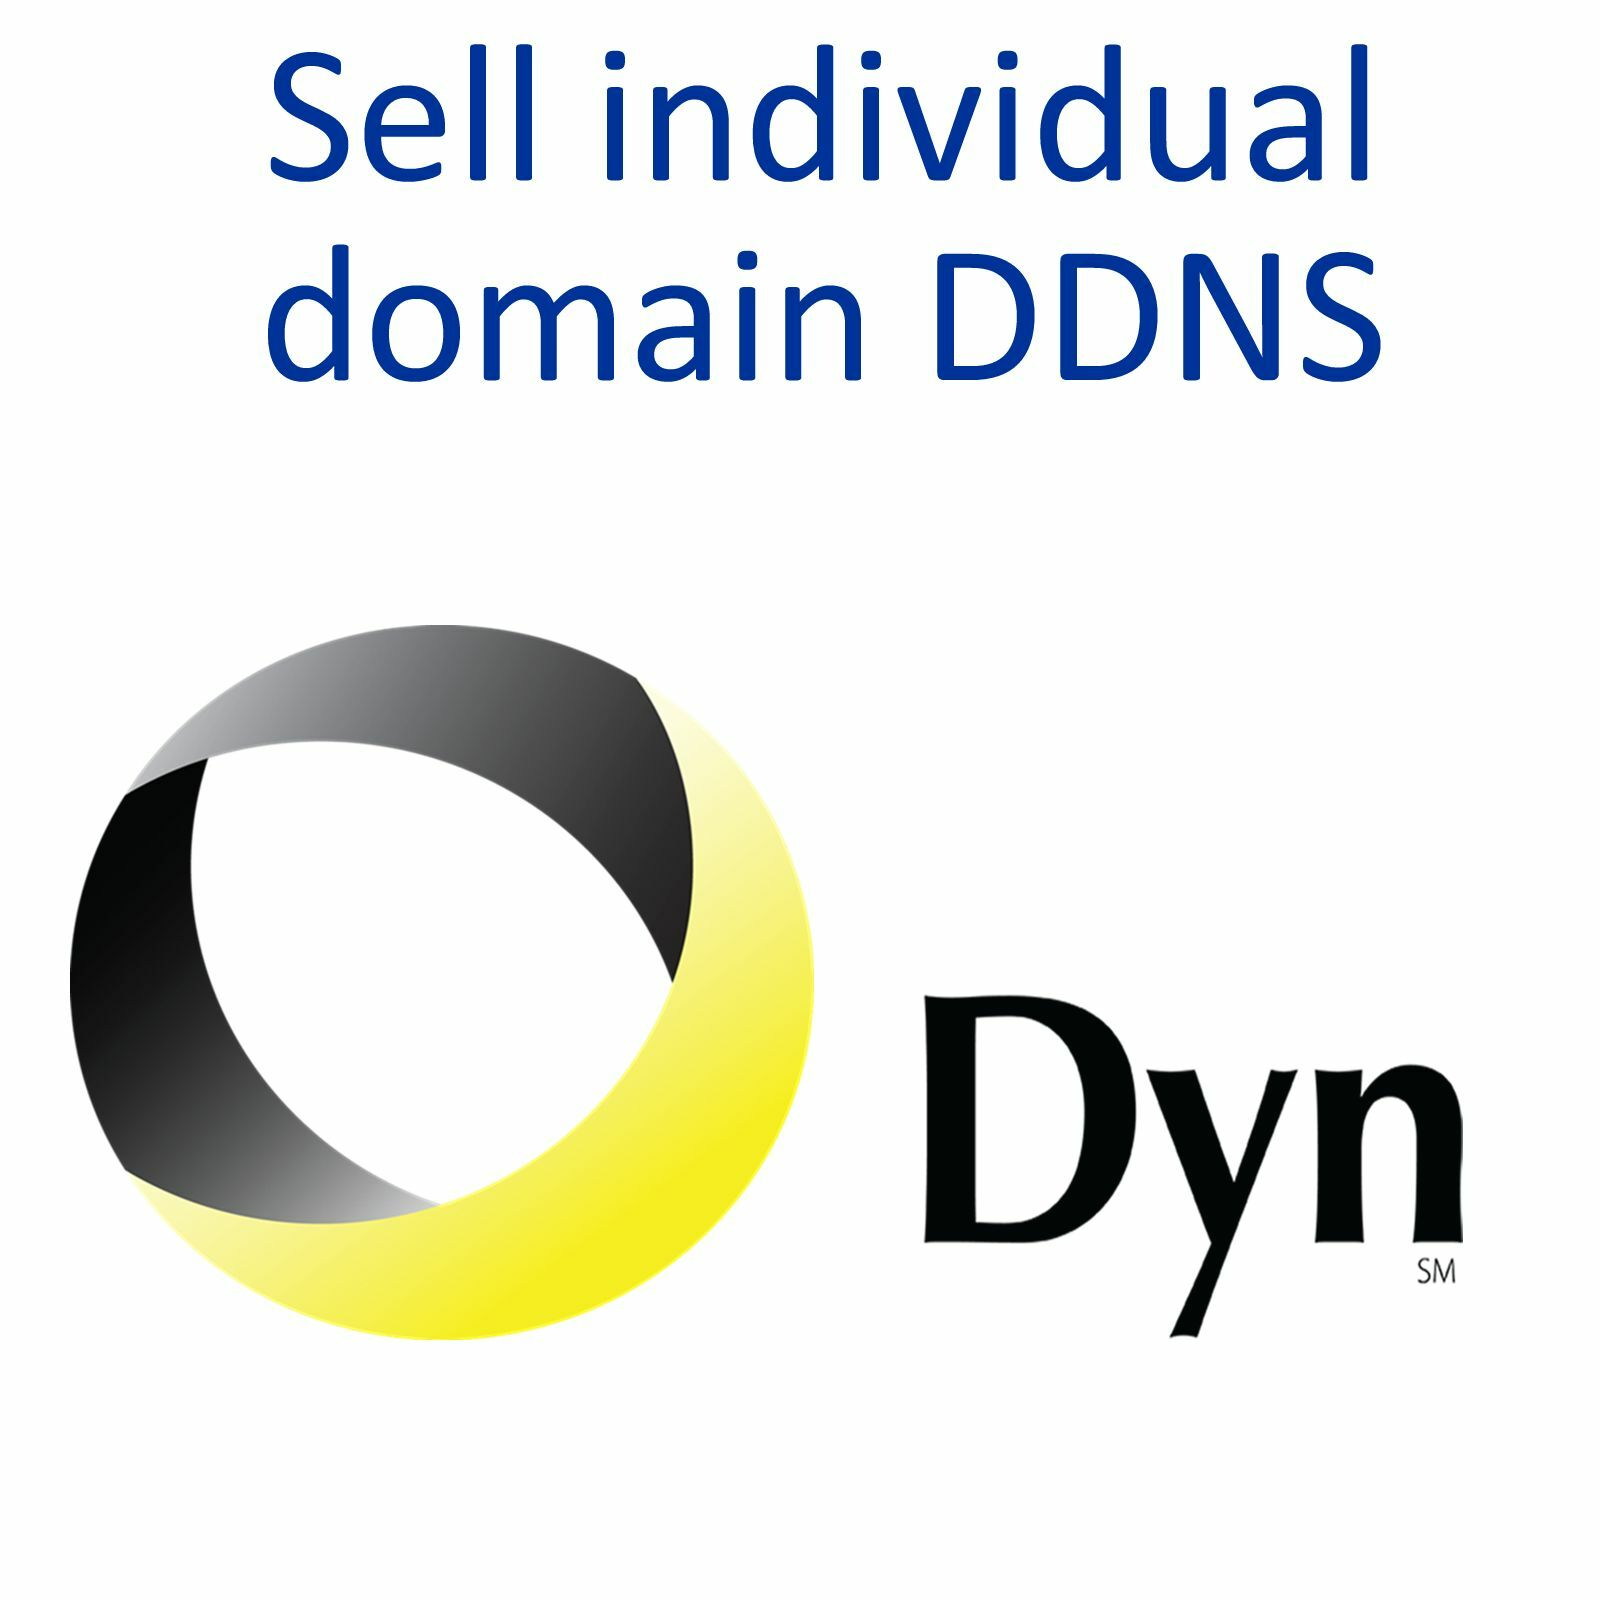 Domain DDNS Registration DyDNS For Cameras, DVR and CCTV systems 1